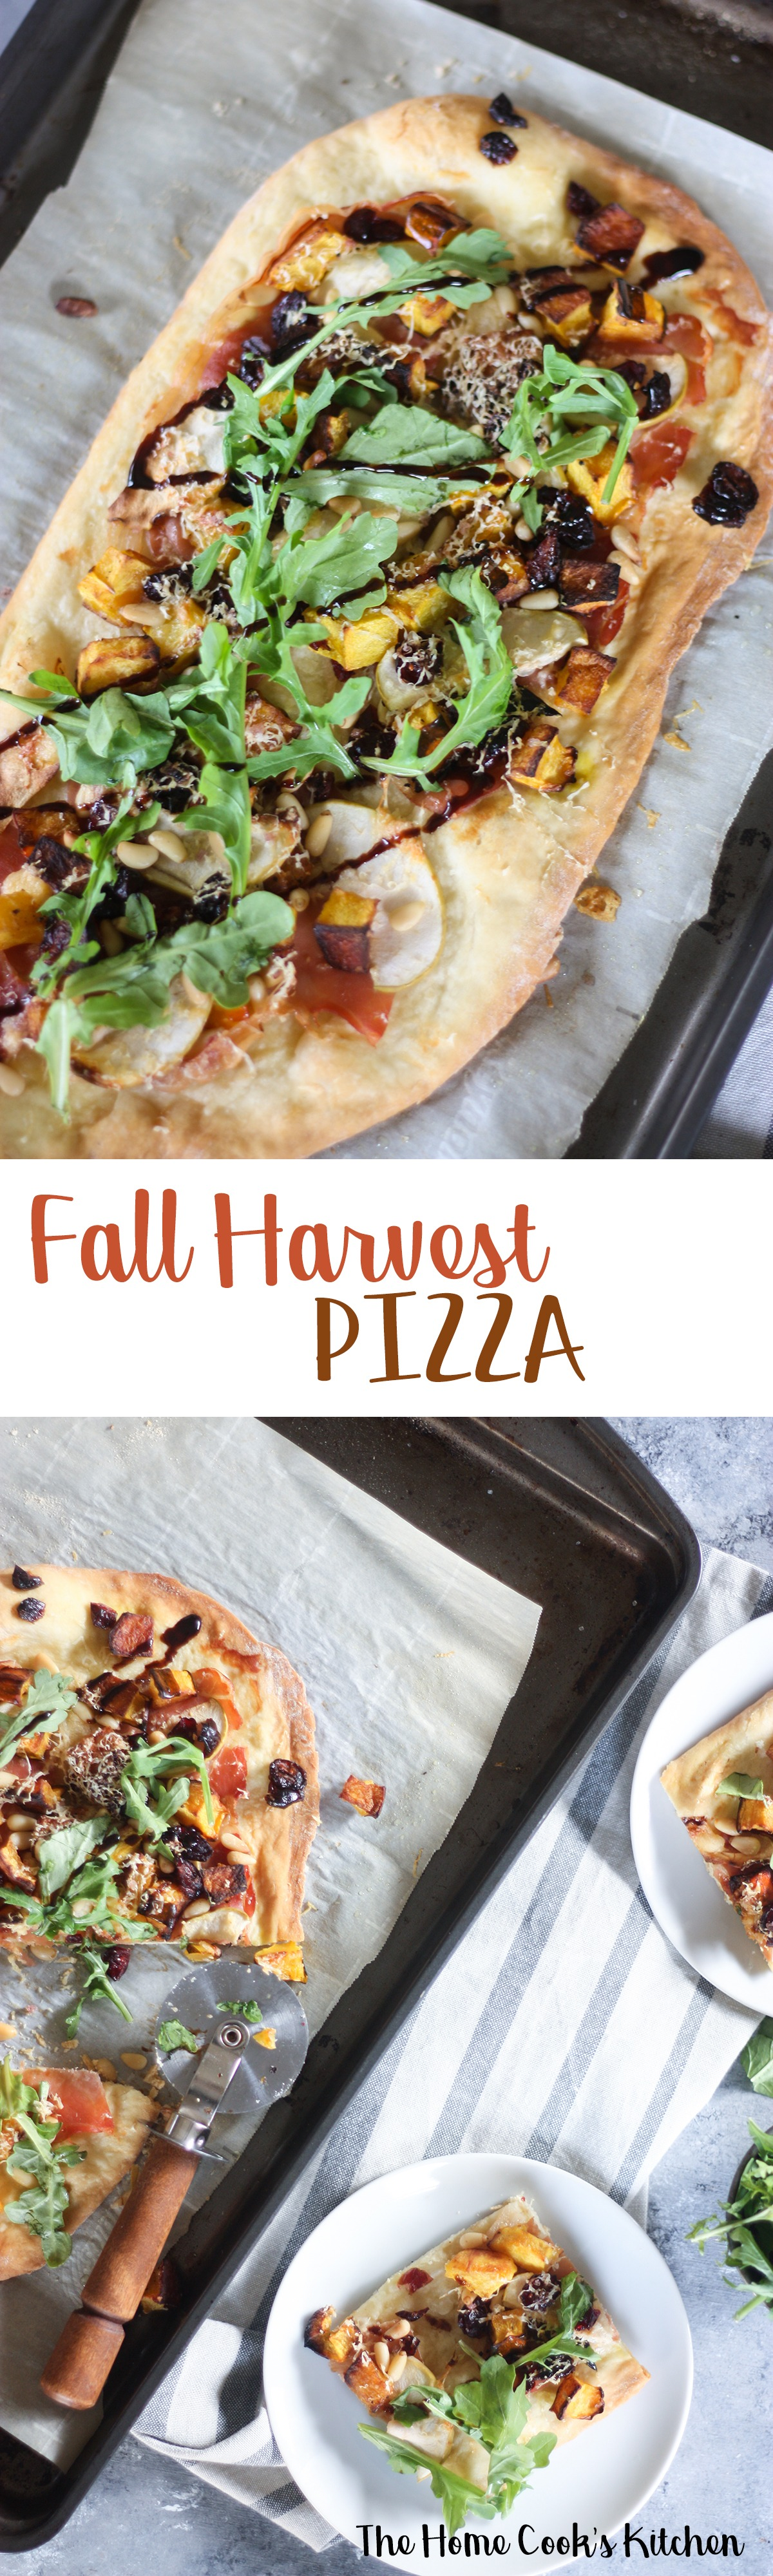 Pin for later! Fall harvest pizza www.thehomecookskitchen.com